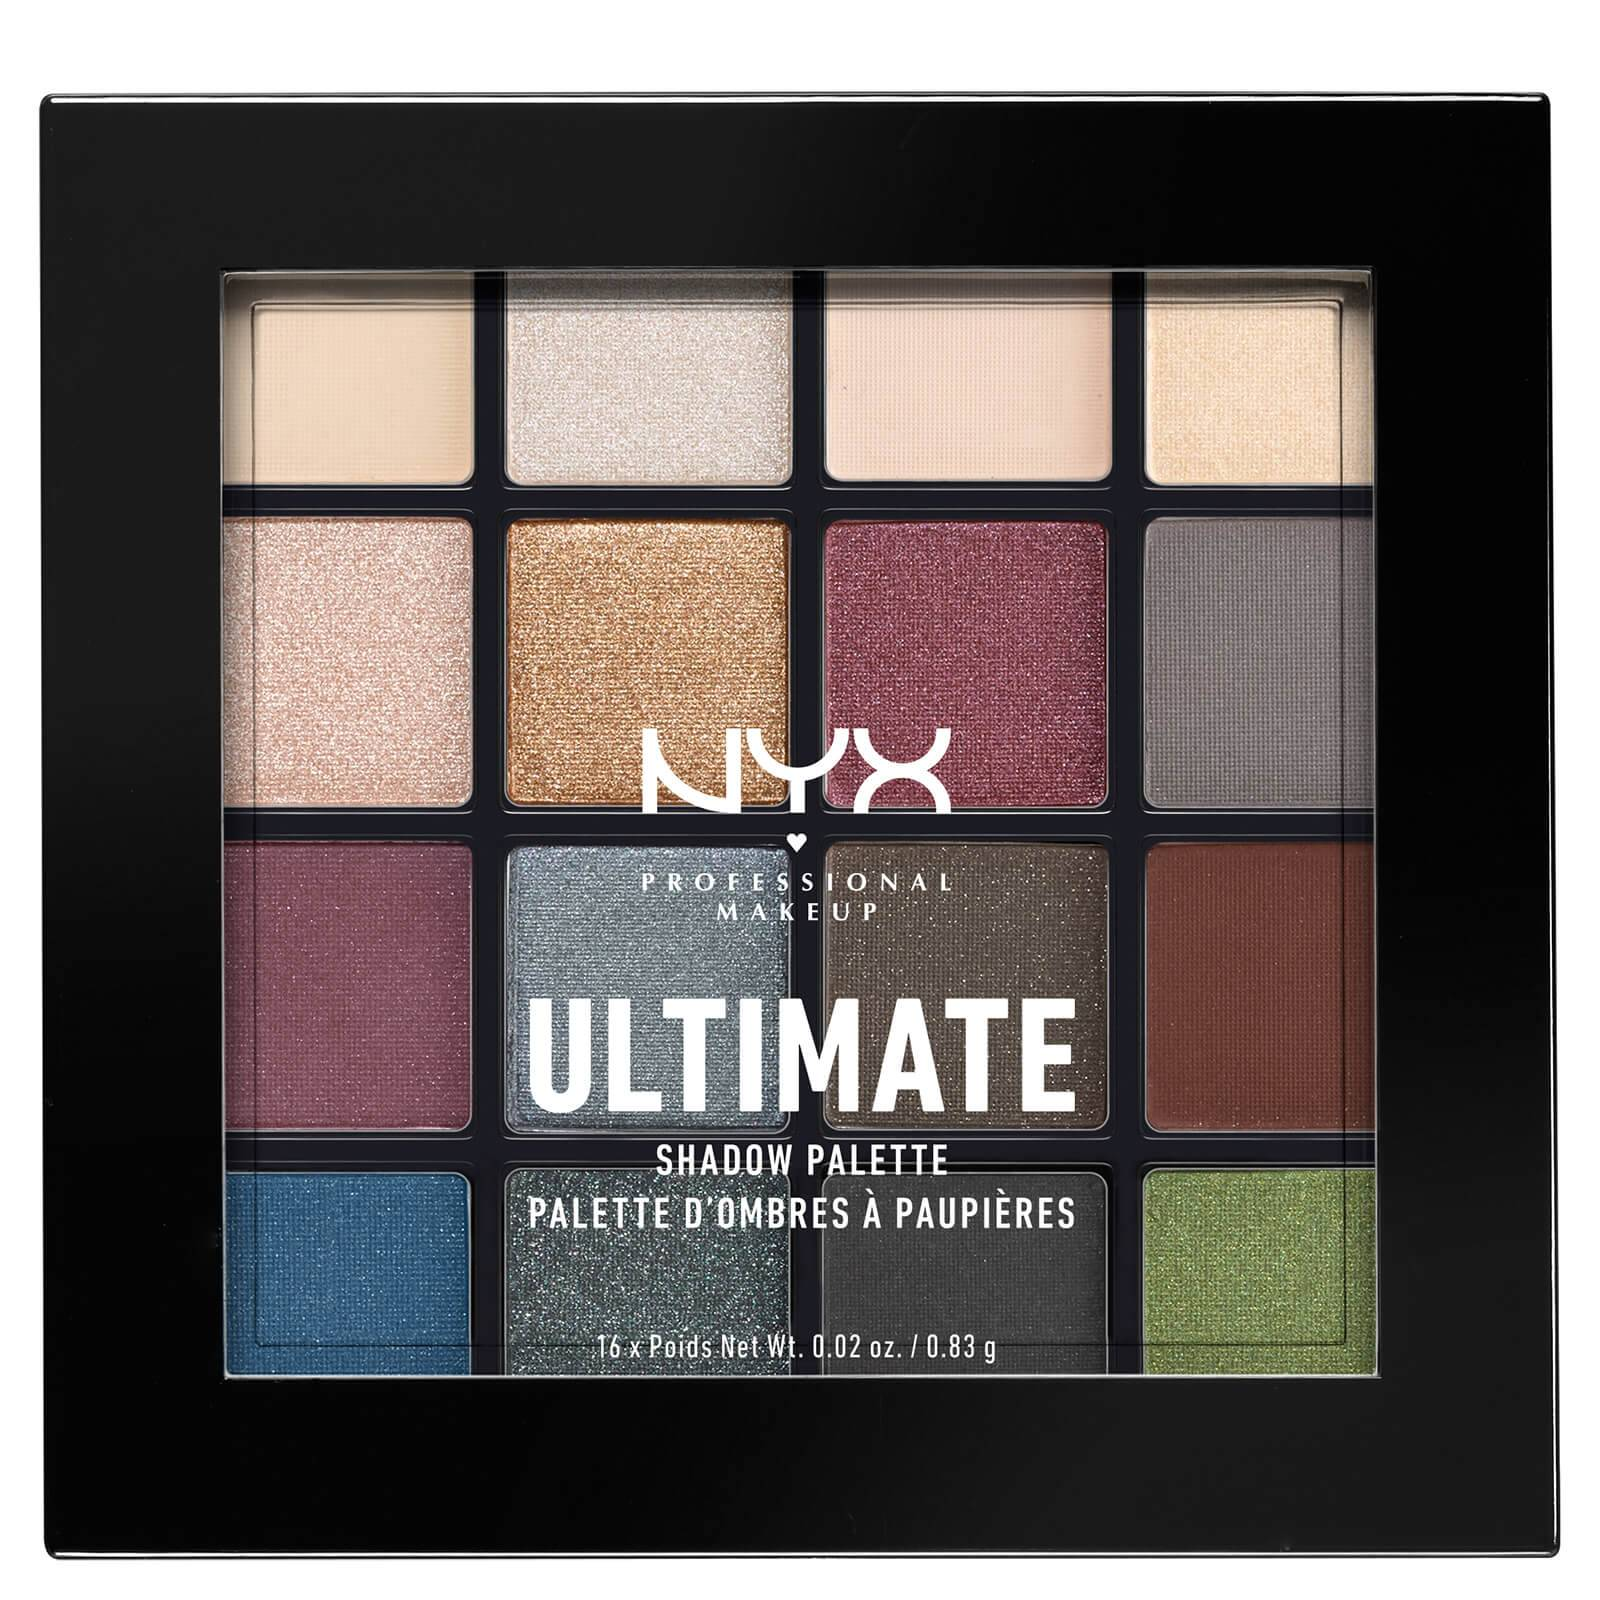 Nyx Professional Makeup Ultimate Shadow Palette - Smokey and Highlight